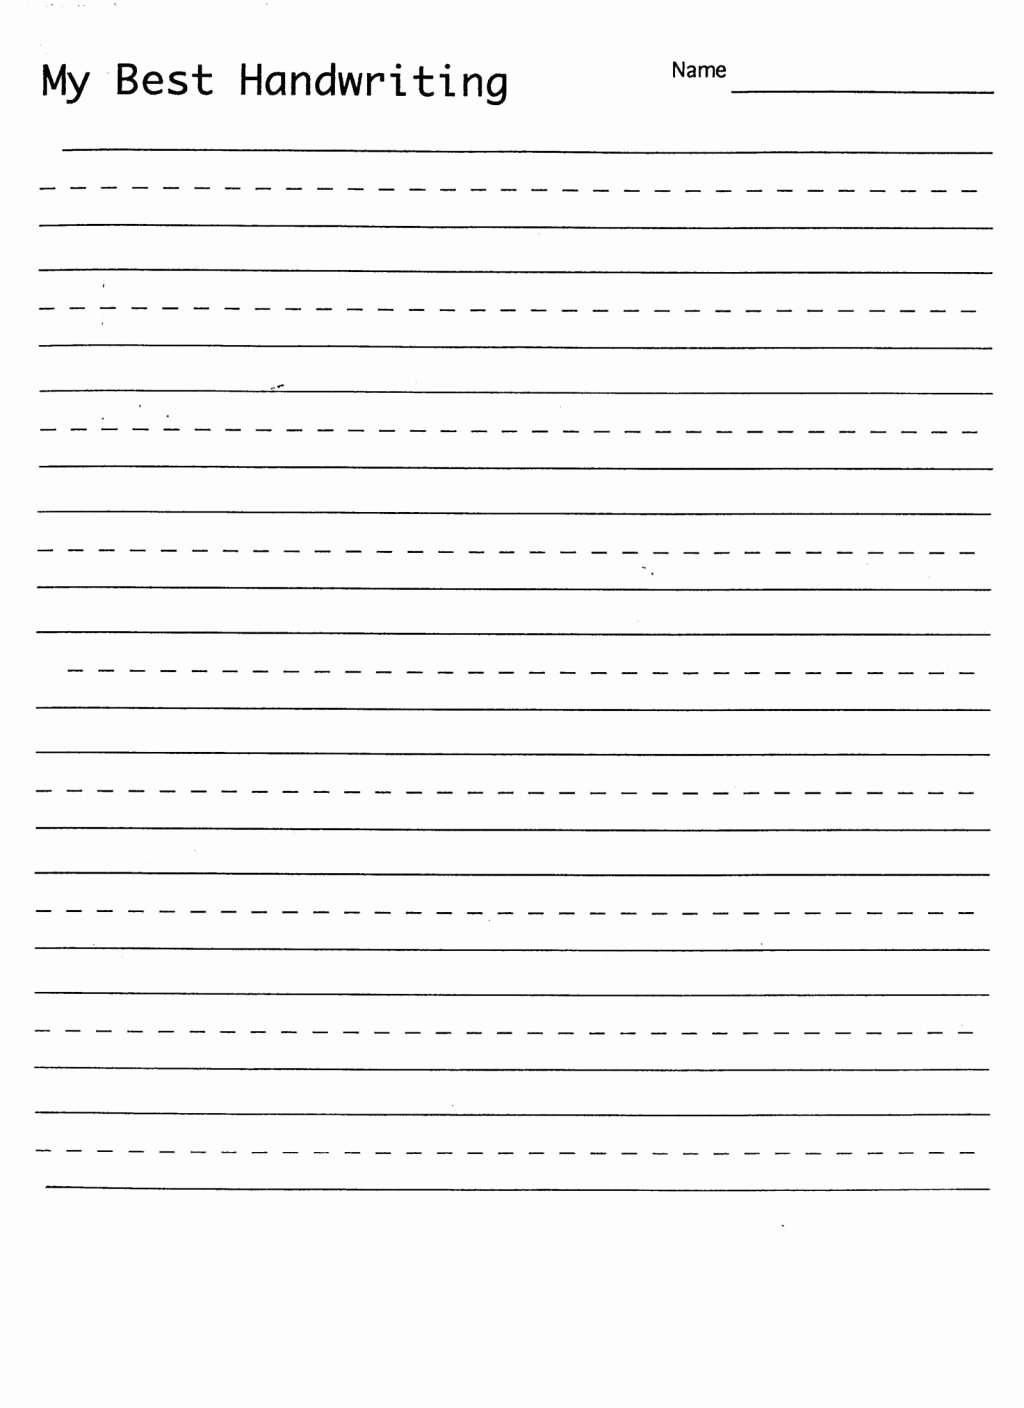 Handwriting Worksheets for Preschoolers Awesome Worksheet Handwritings for Kindergarten Names Printable